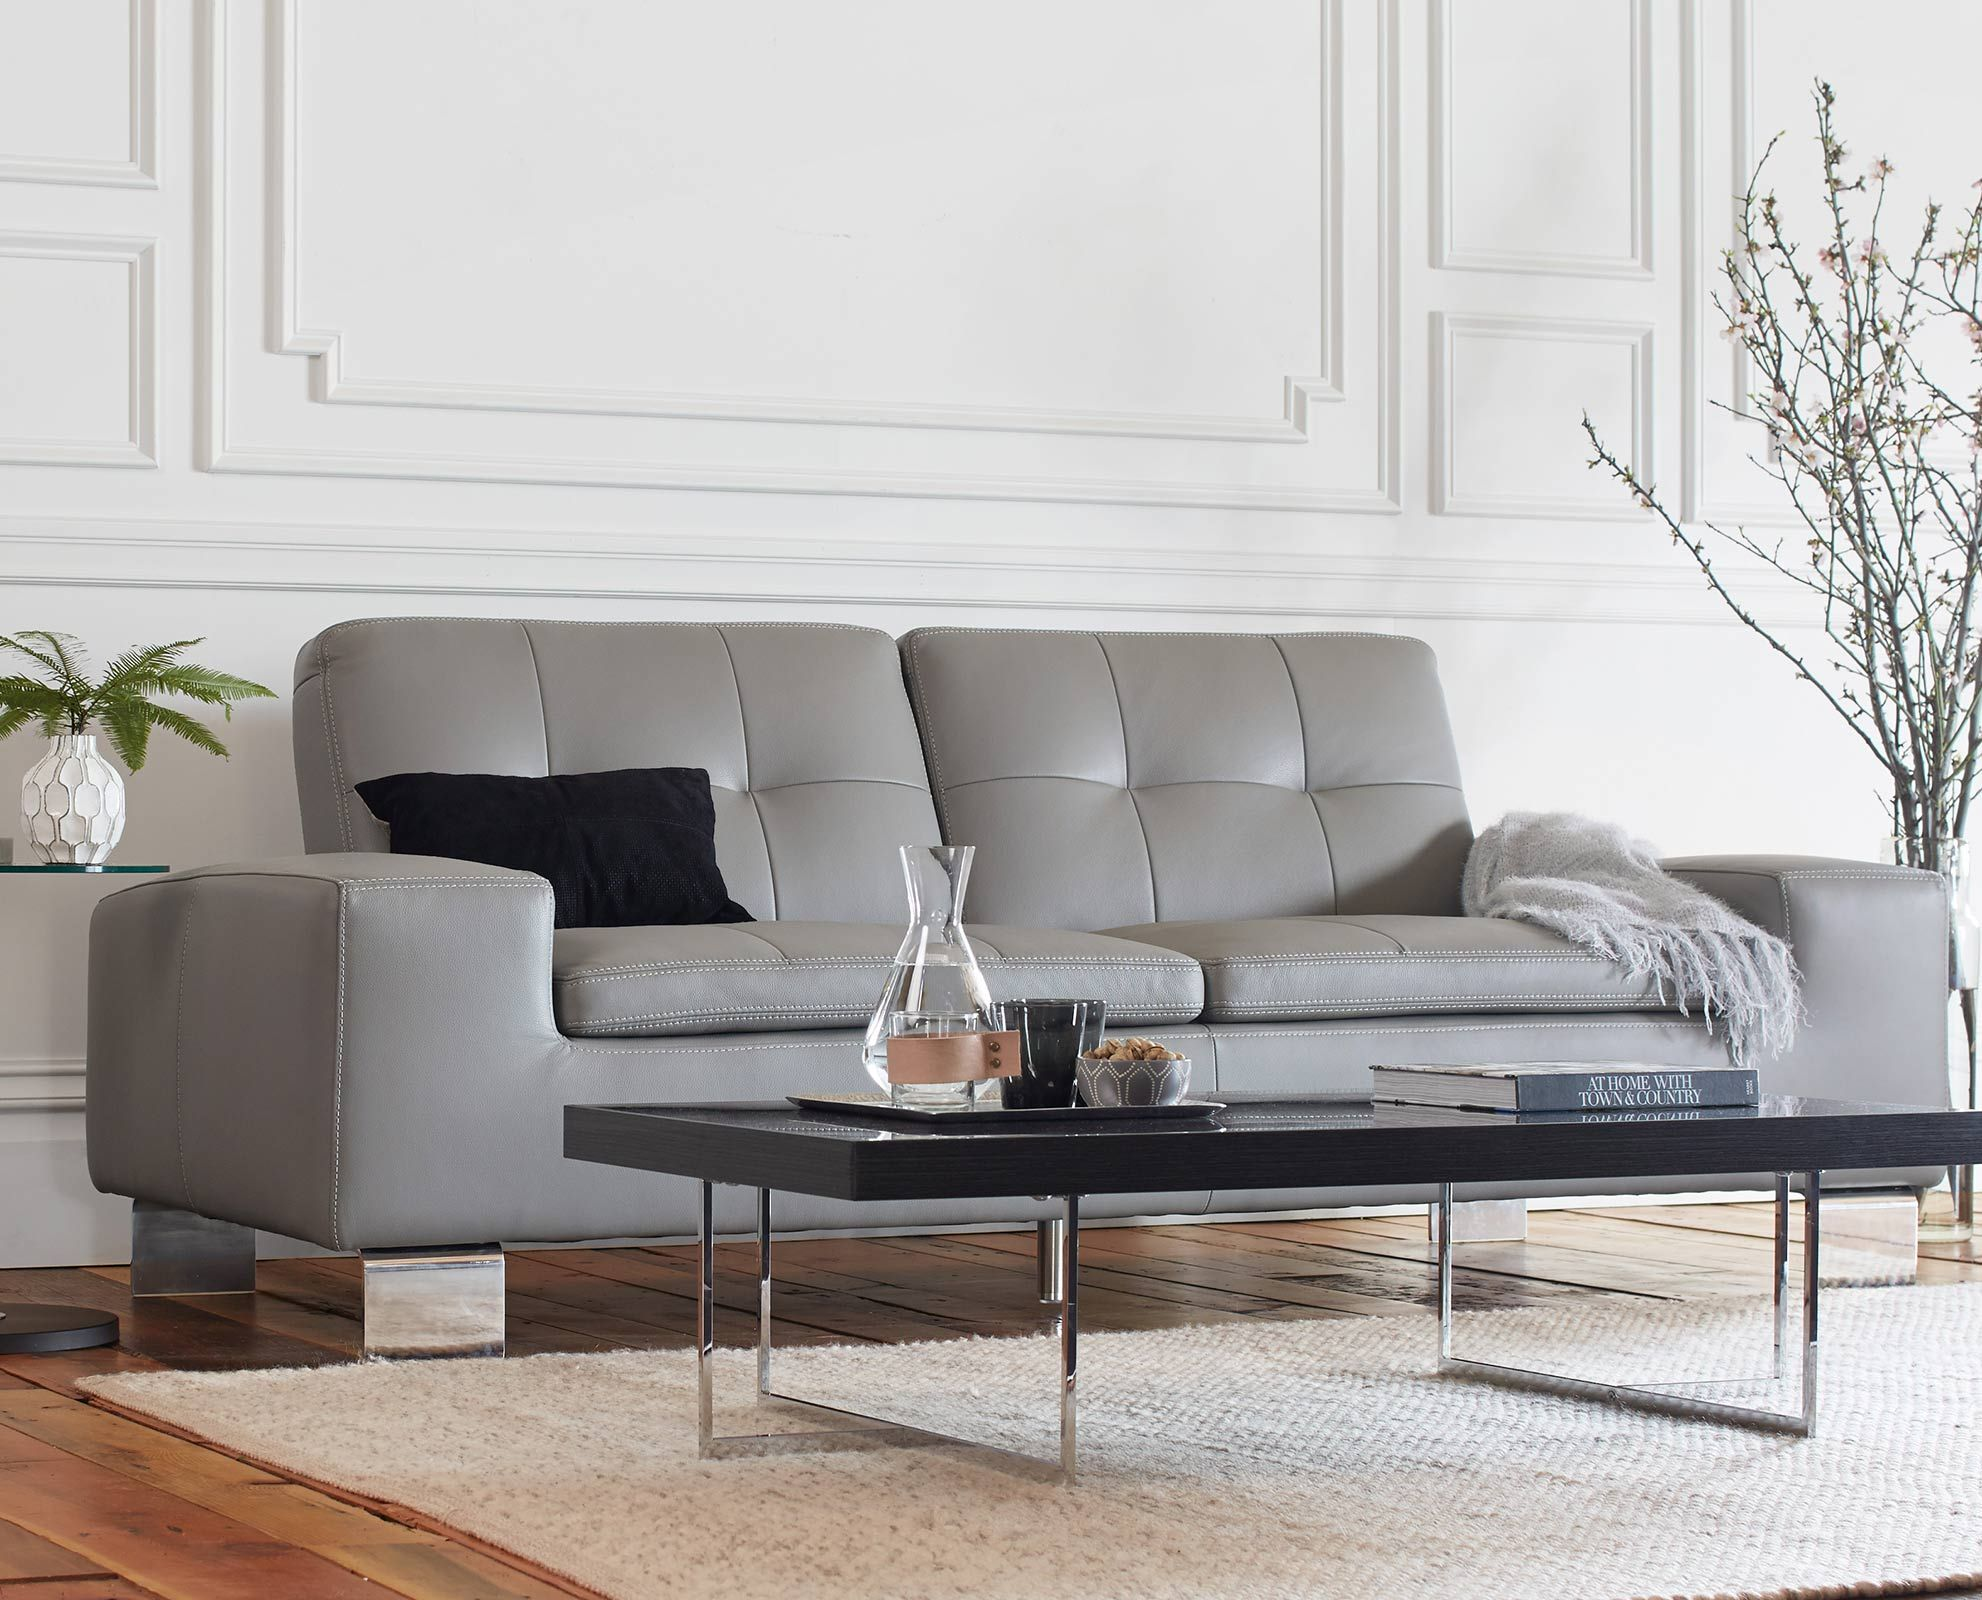 69 best Living Room Furniture images on Pinterest